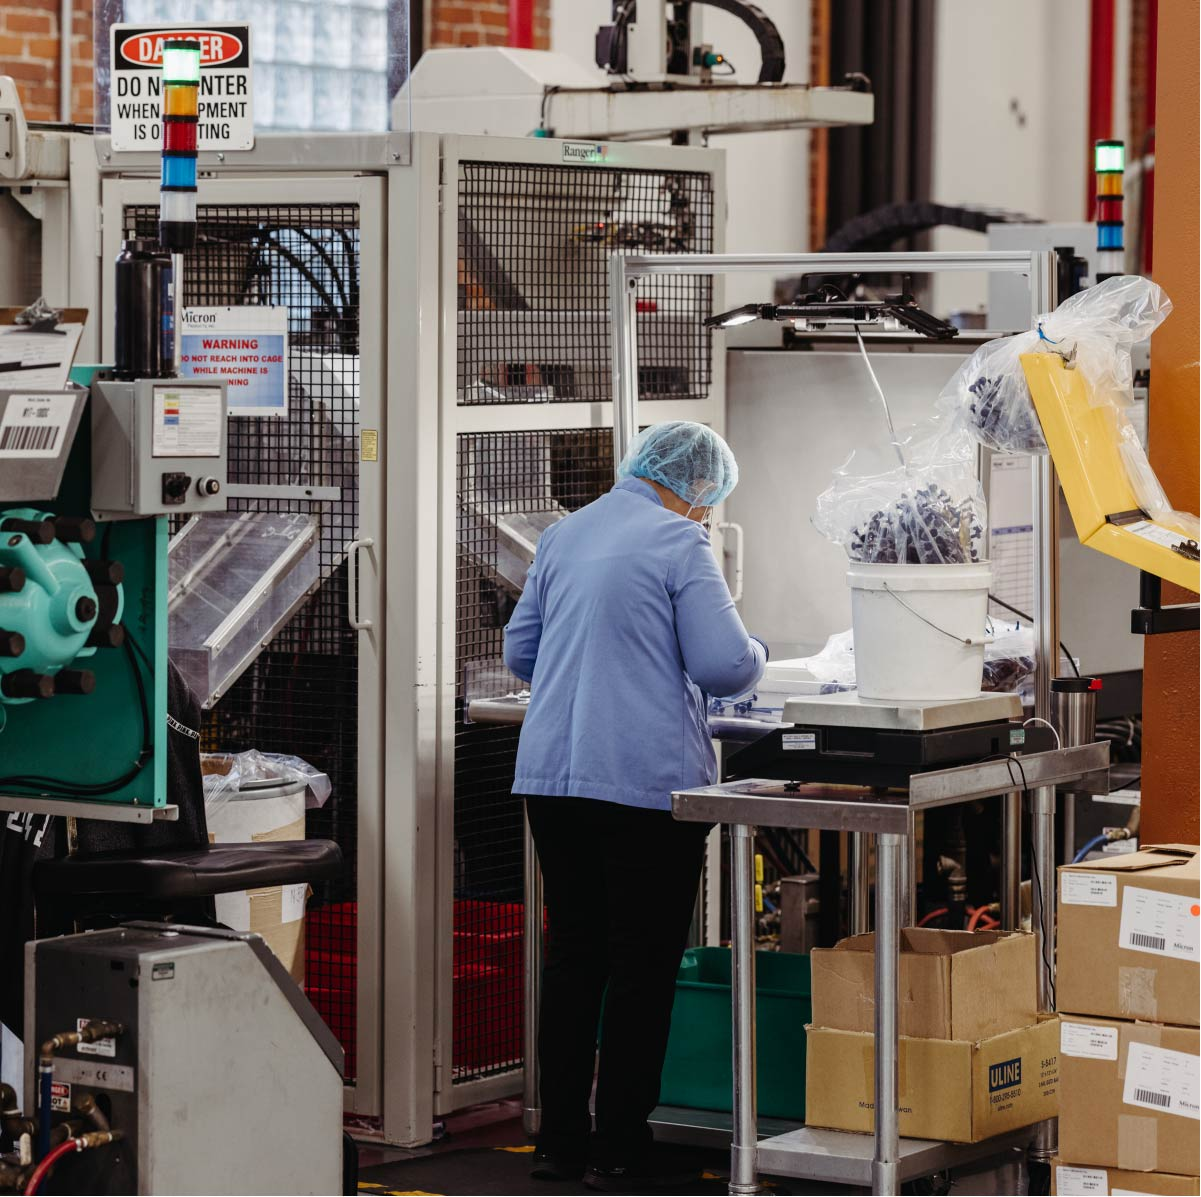 An employee works on assembling medical devices